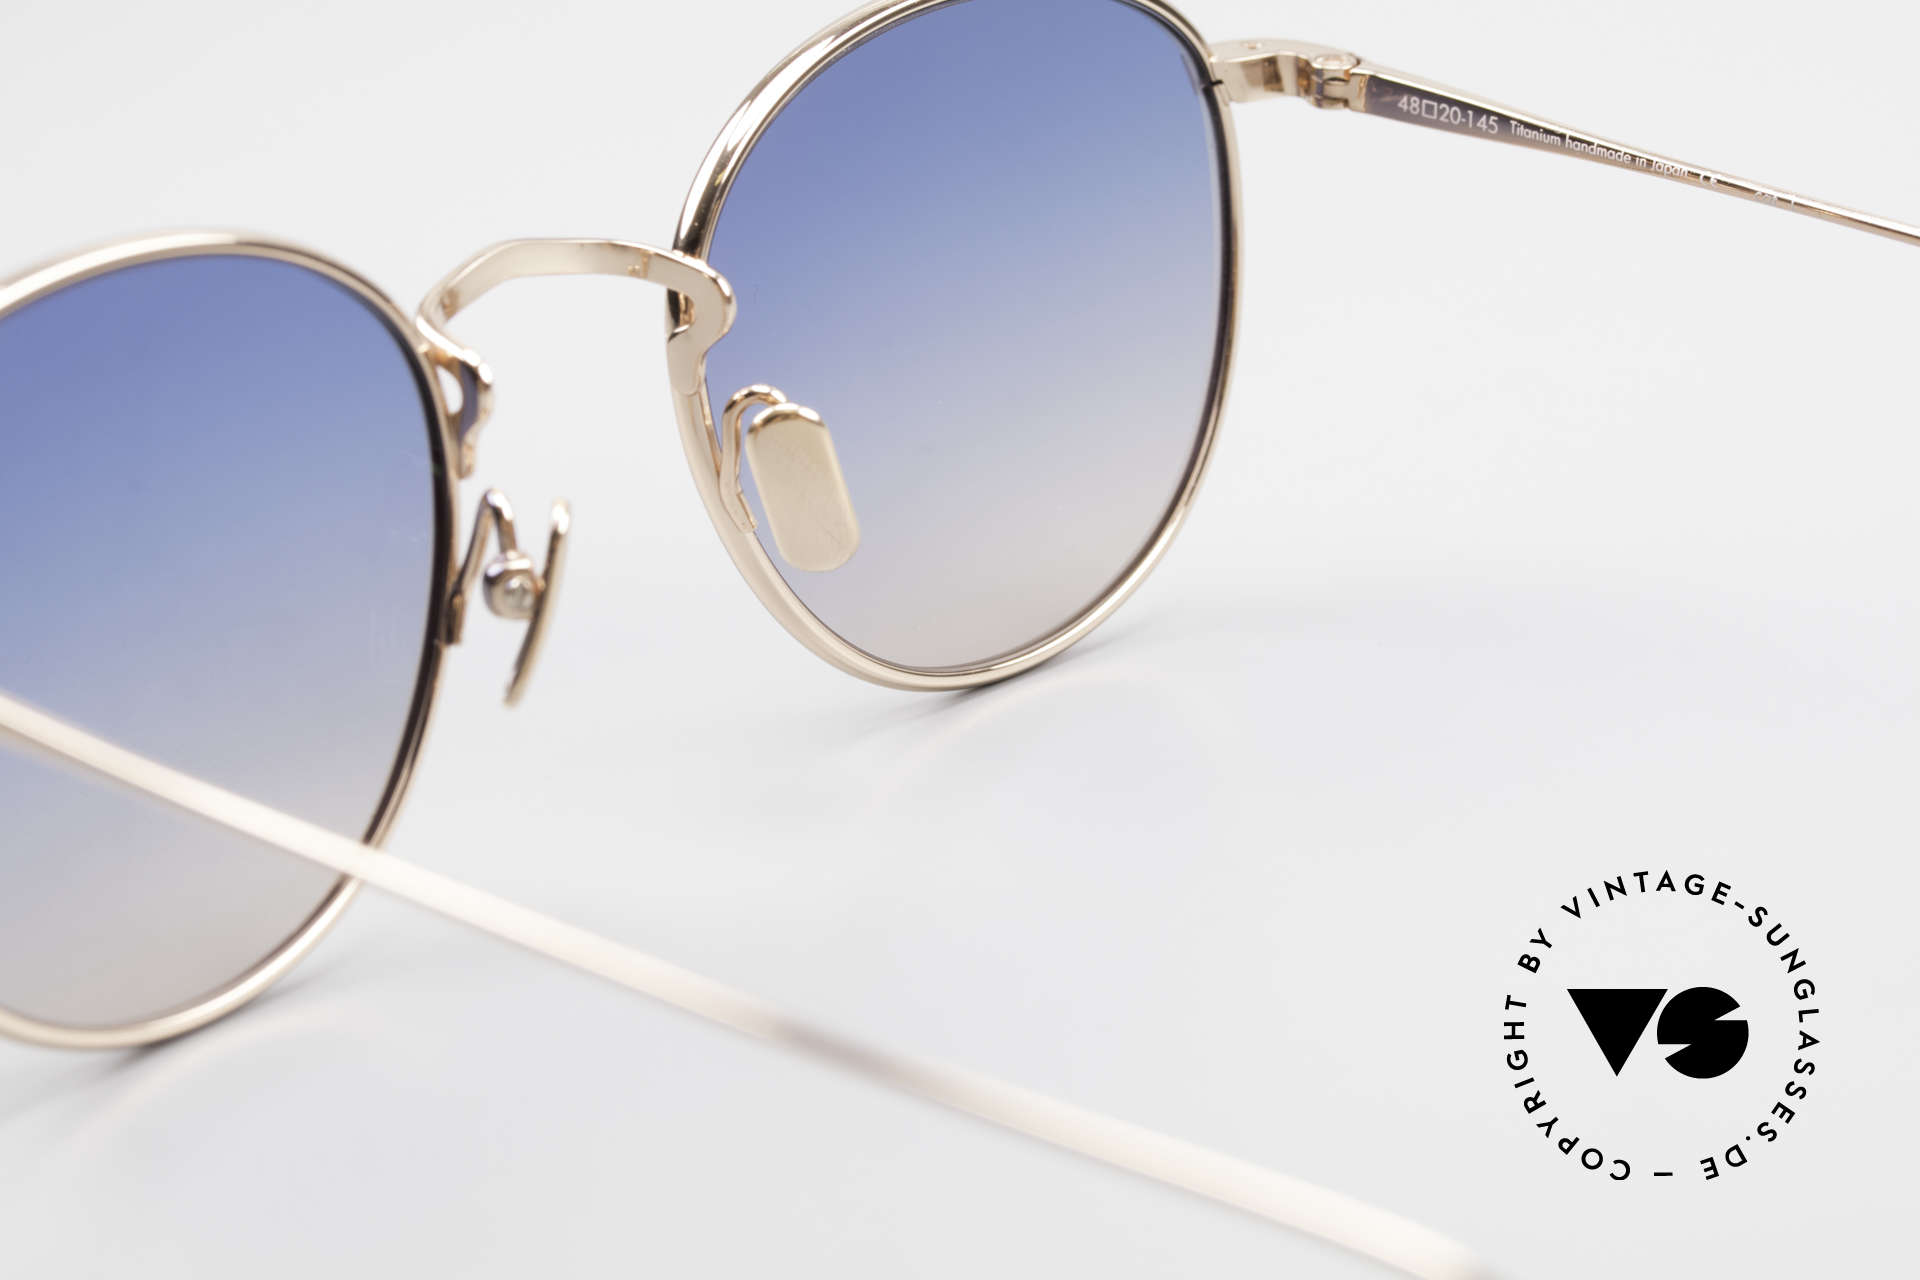 Lunor M9 Mod 01 RG Titan Sunglasses Rose Gold, Size: small, Made for Men and Women